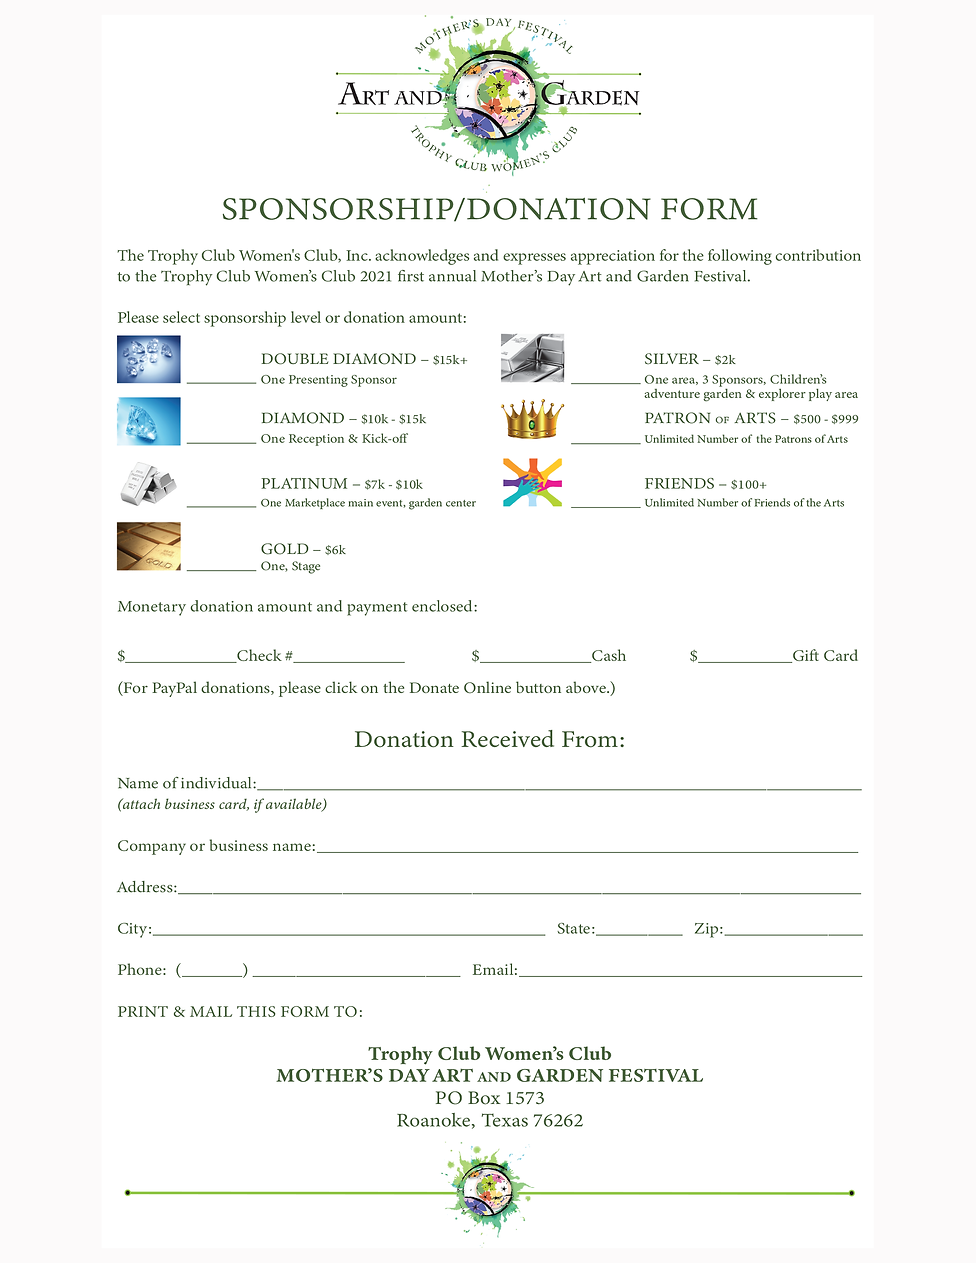 TCWC_A&GF Donation Form_FINAL.2.png